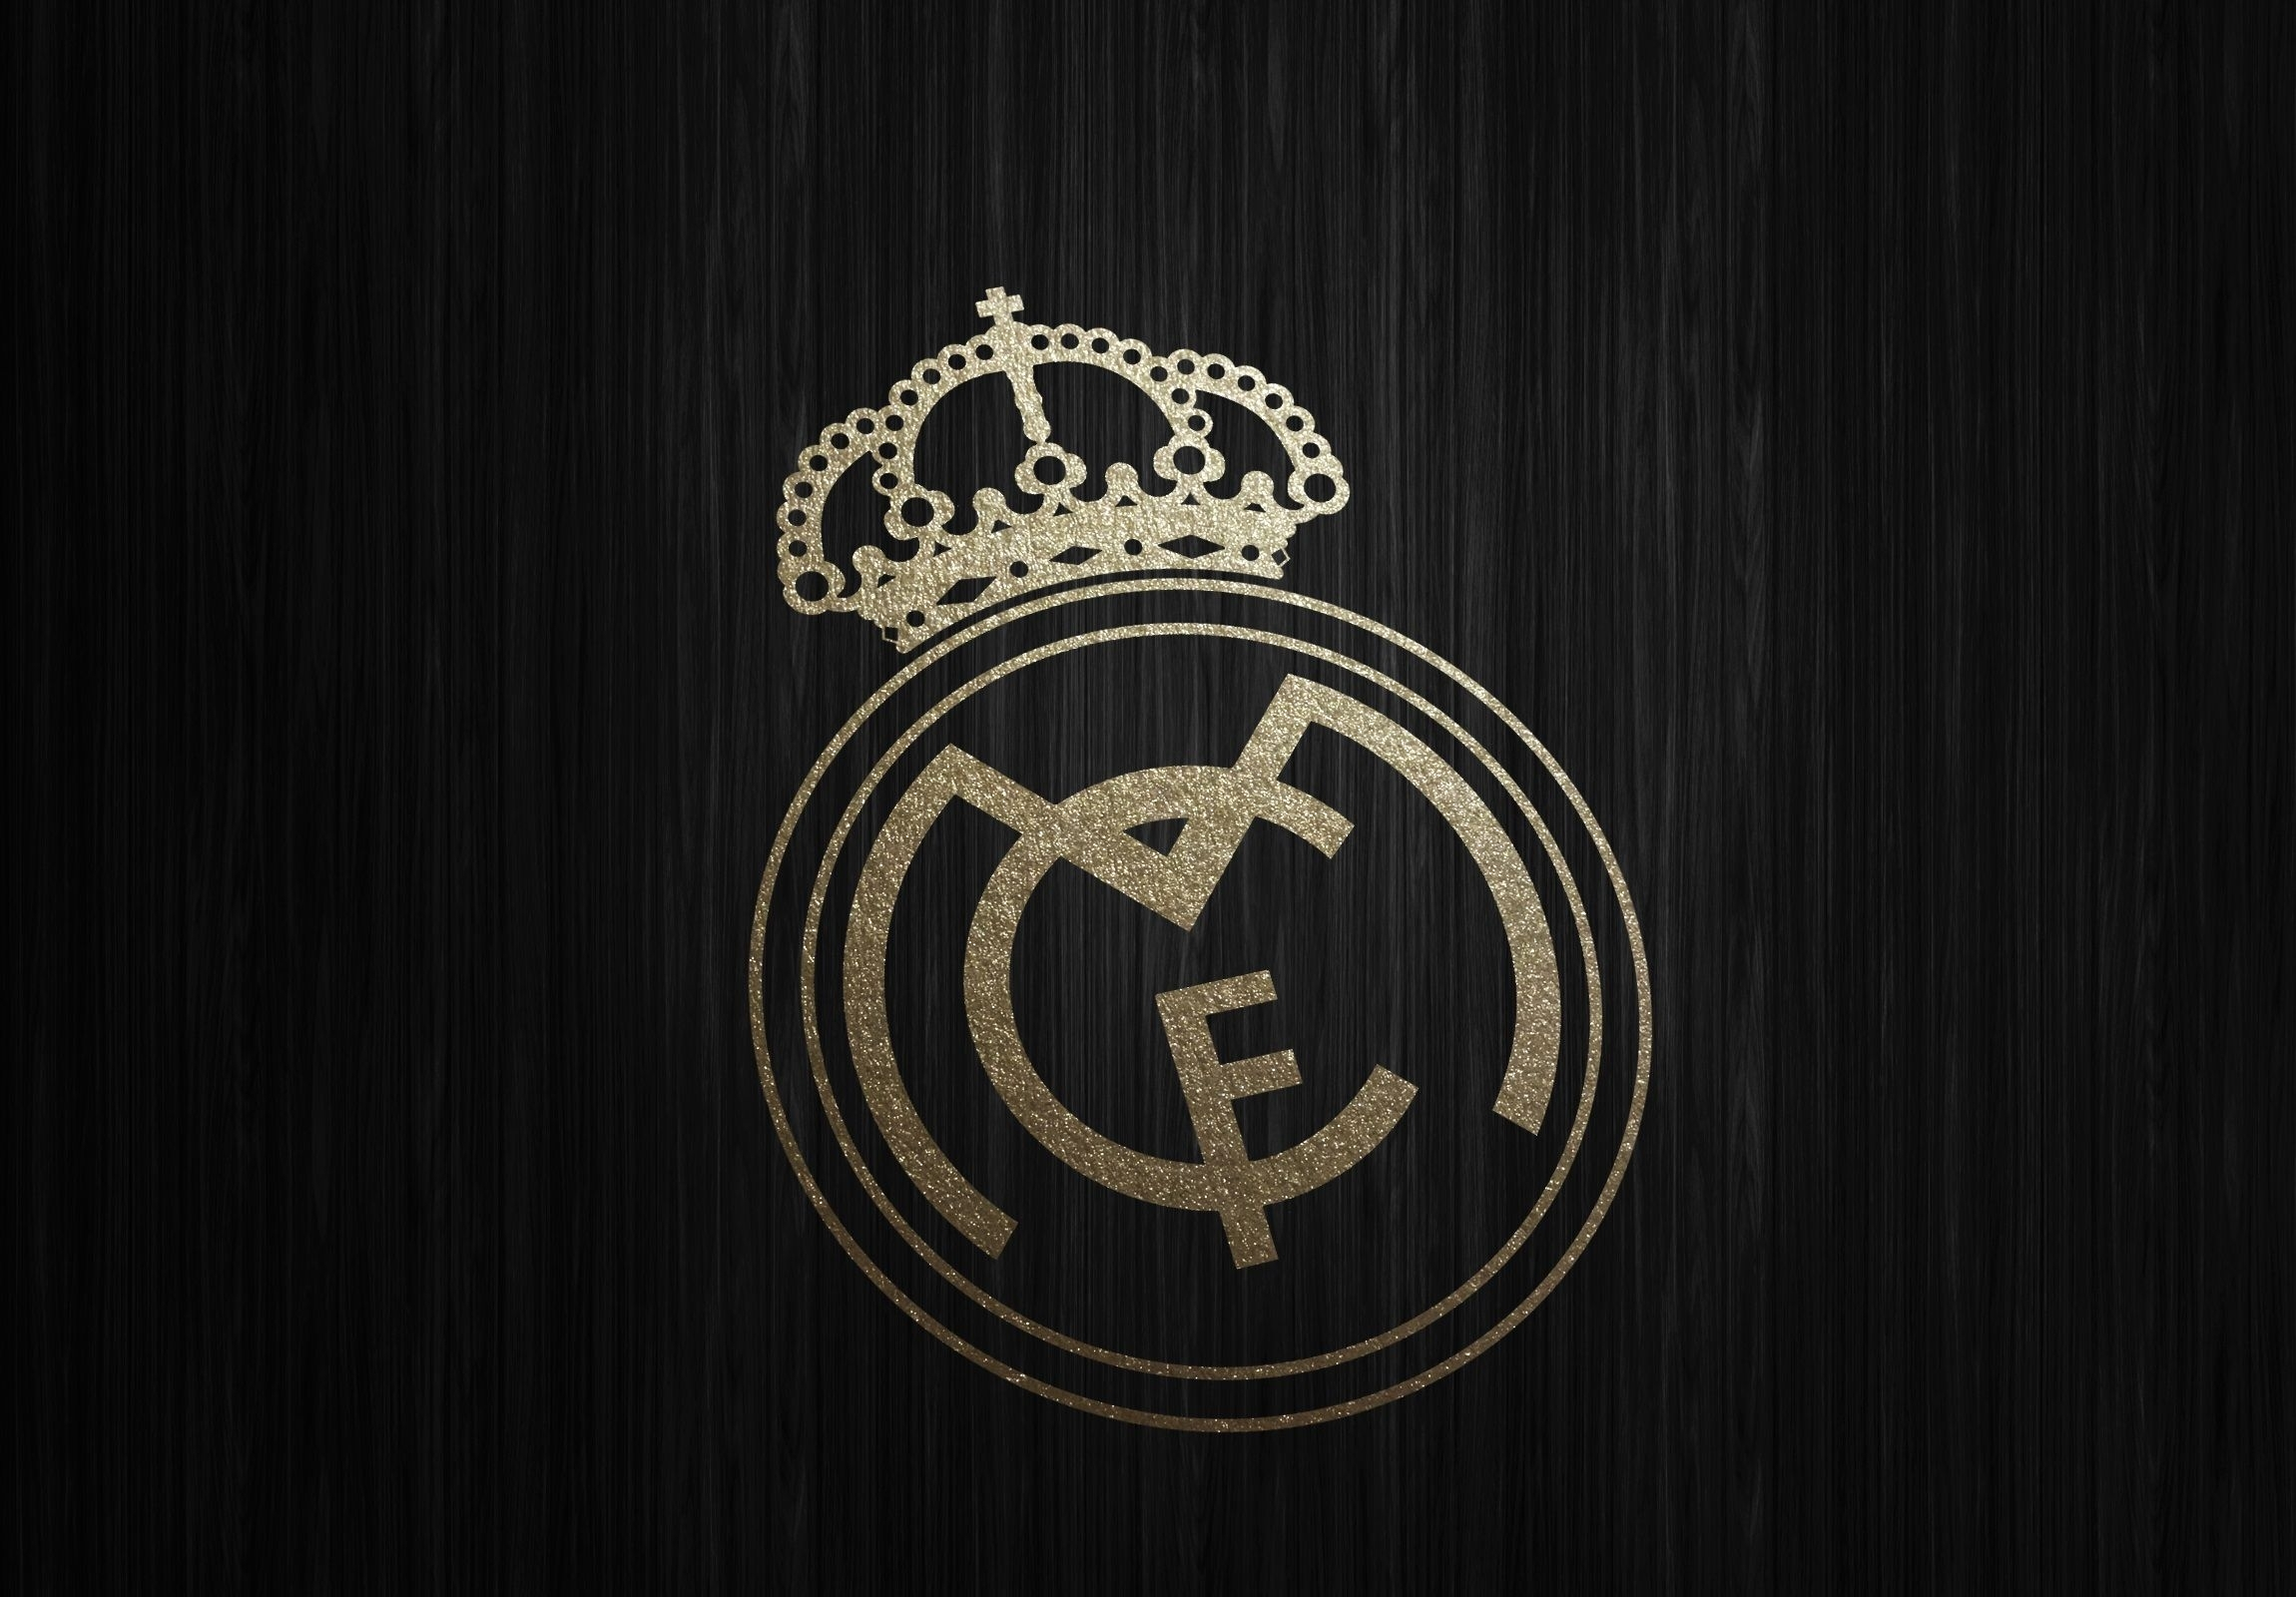 10 Top Real Madrid Wallpaper Hd FULL HD 1920×1080 For PC Desktop